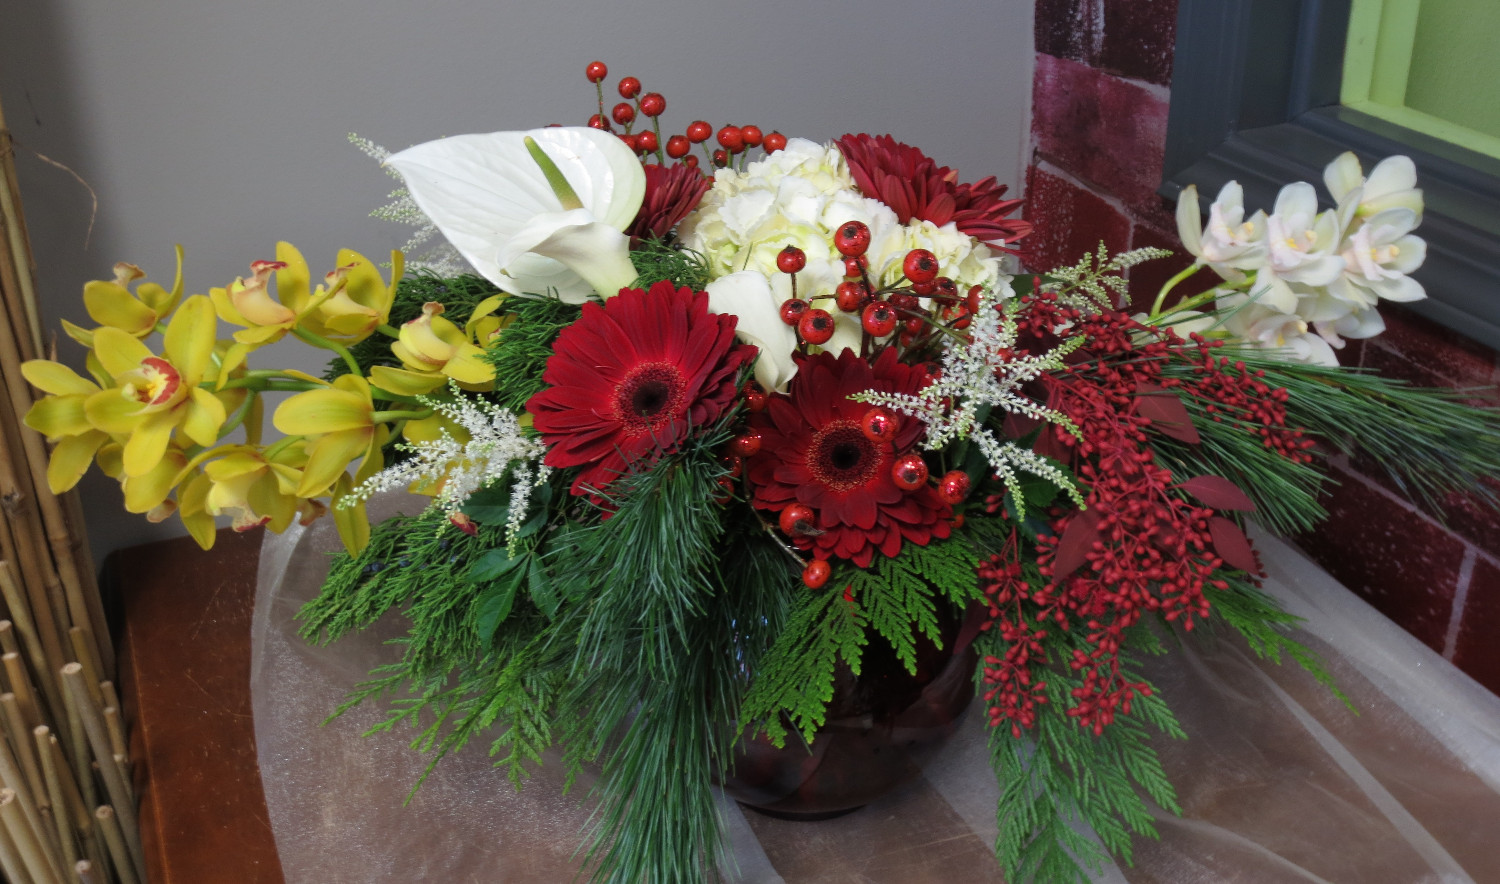 We make bright and beautiful Christmas bouquets of chocolates with our own hands